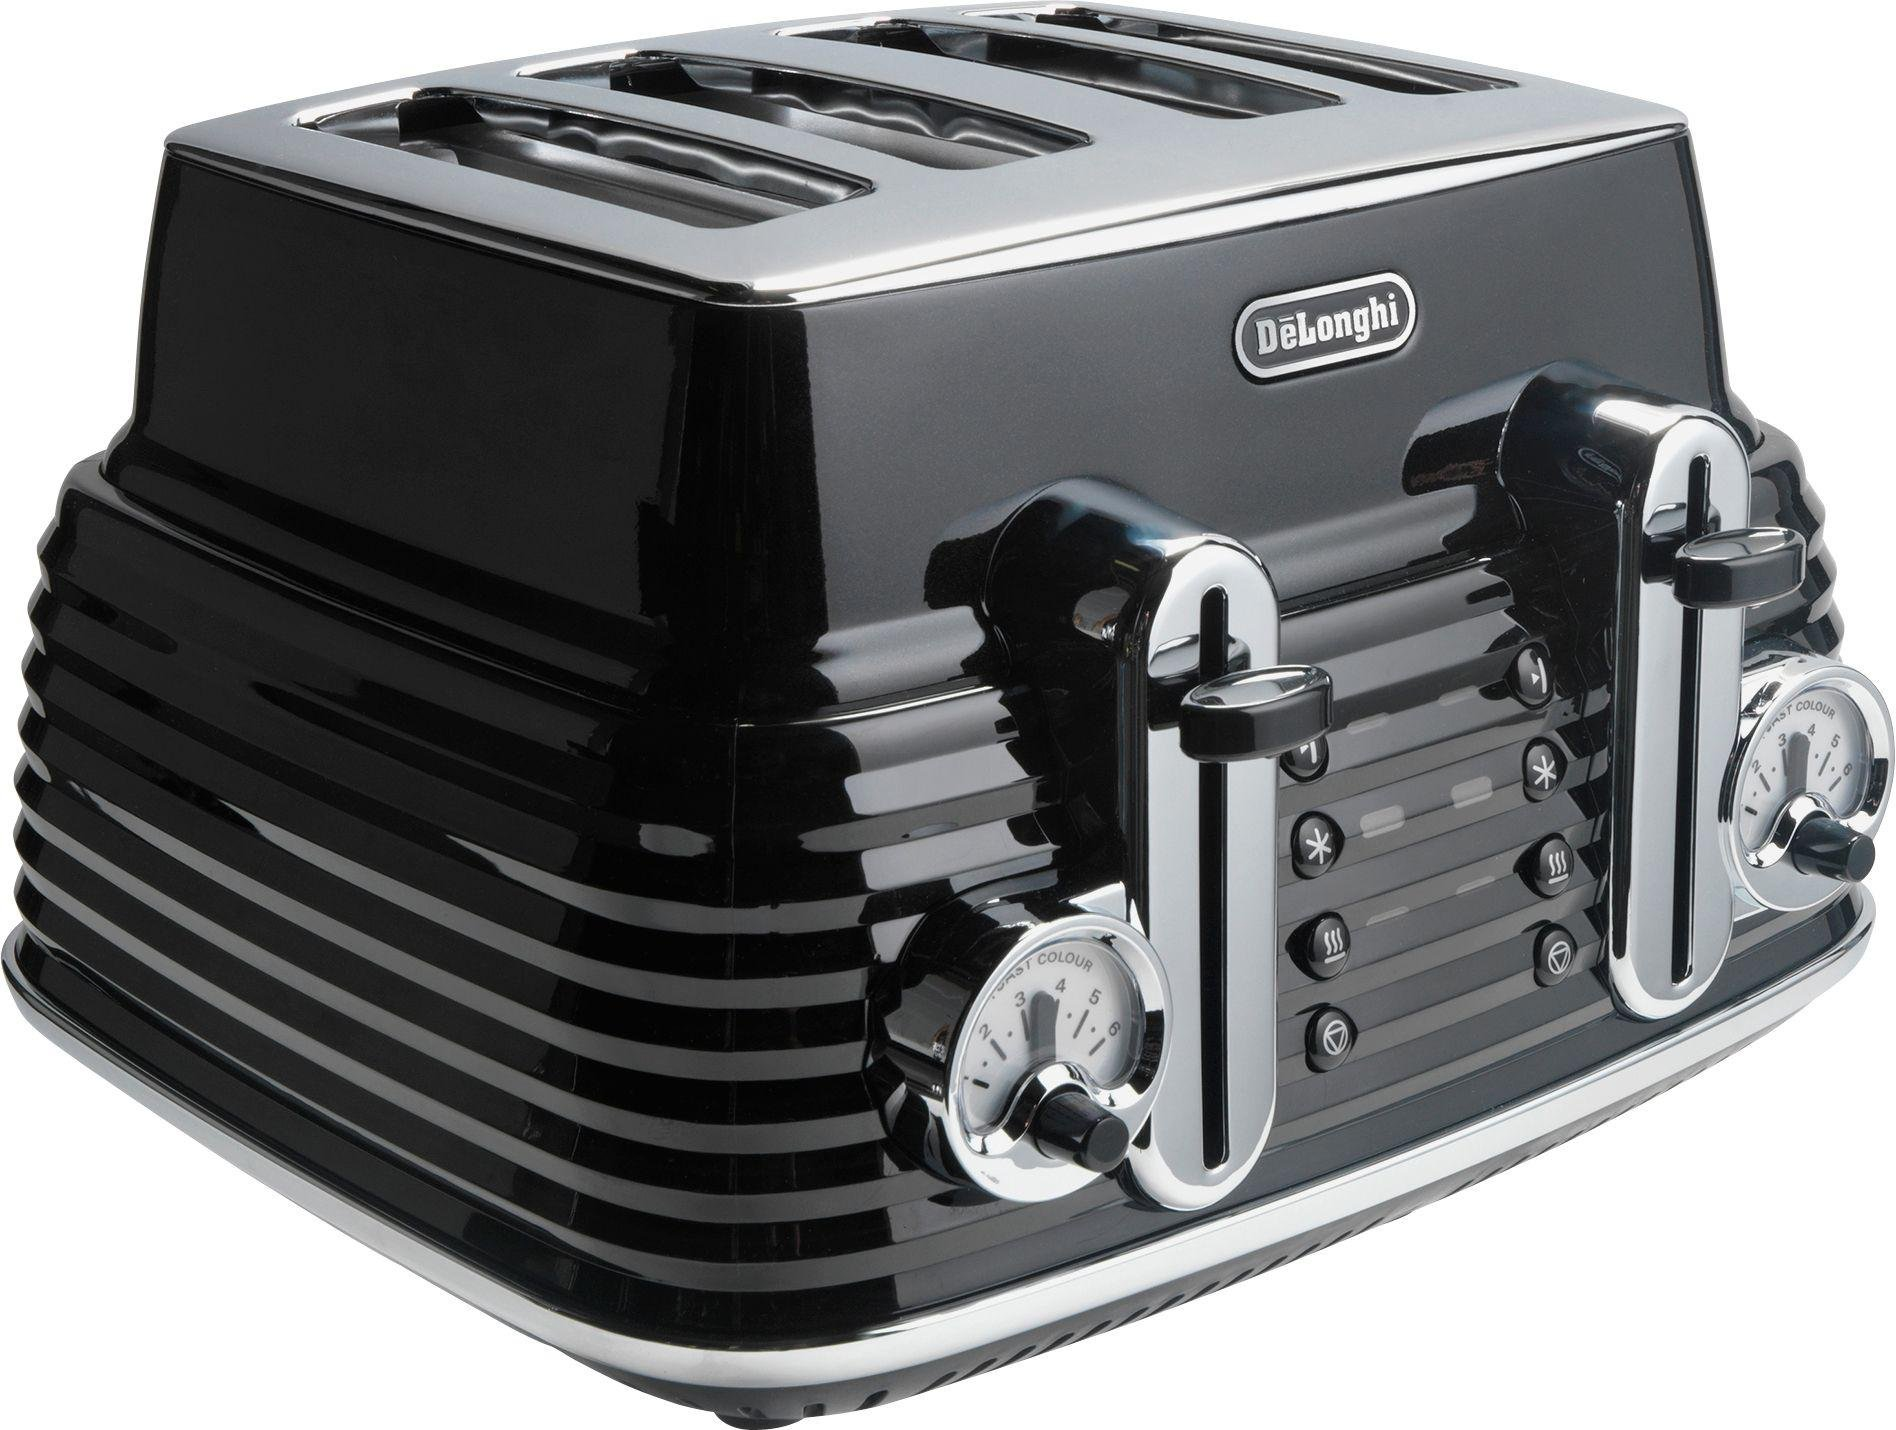 Image of De'Longhi - Toaster - 4 Slice Scultura Toaster - -Black